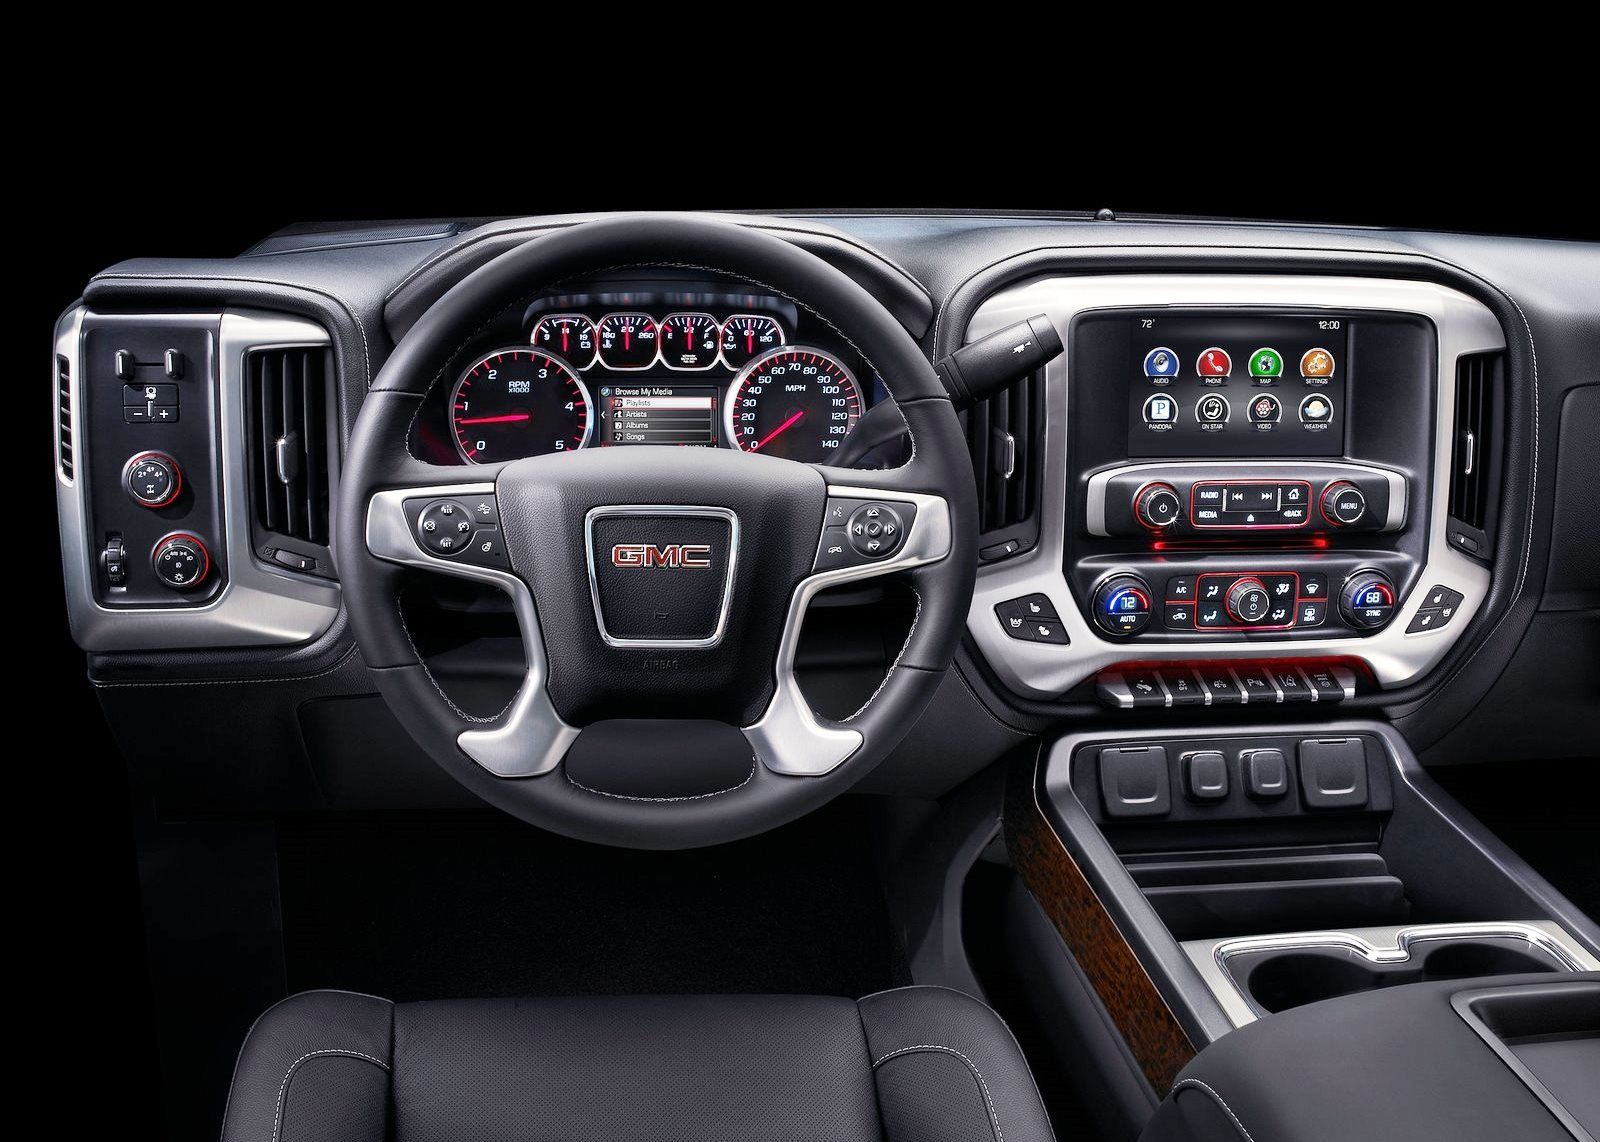 2015 Gmc Sierra Hd Showing 2015 Gmc Sierra Hd 5 Jpg Gmc Denali